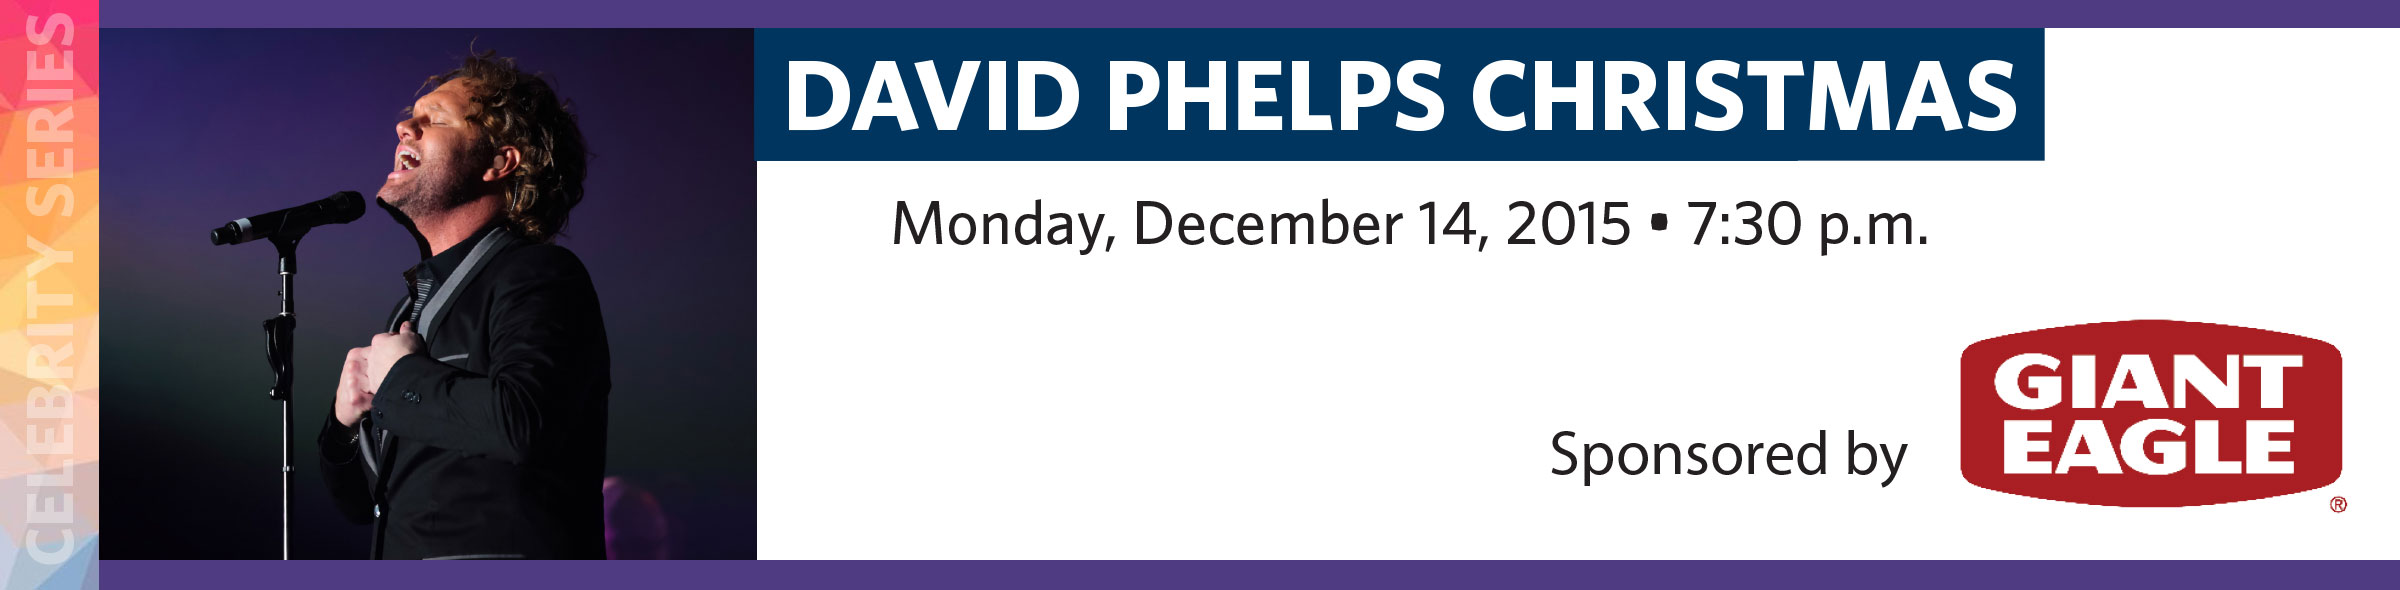 David Phelps Christmas